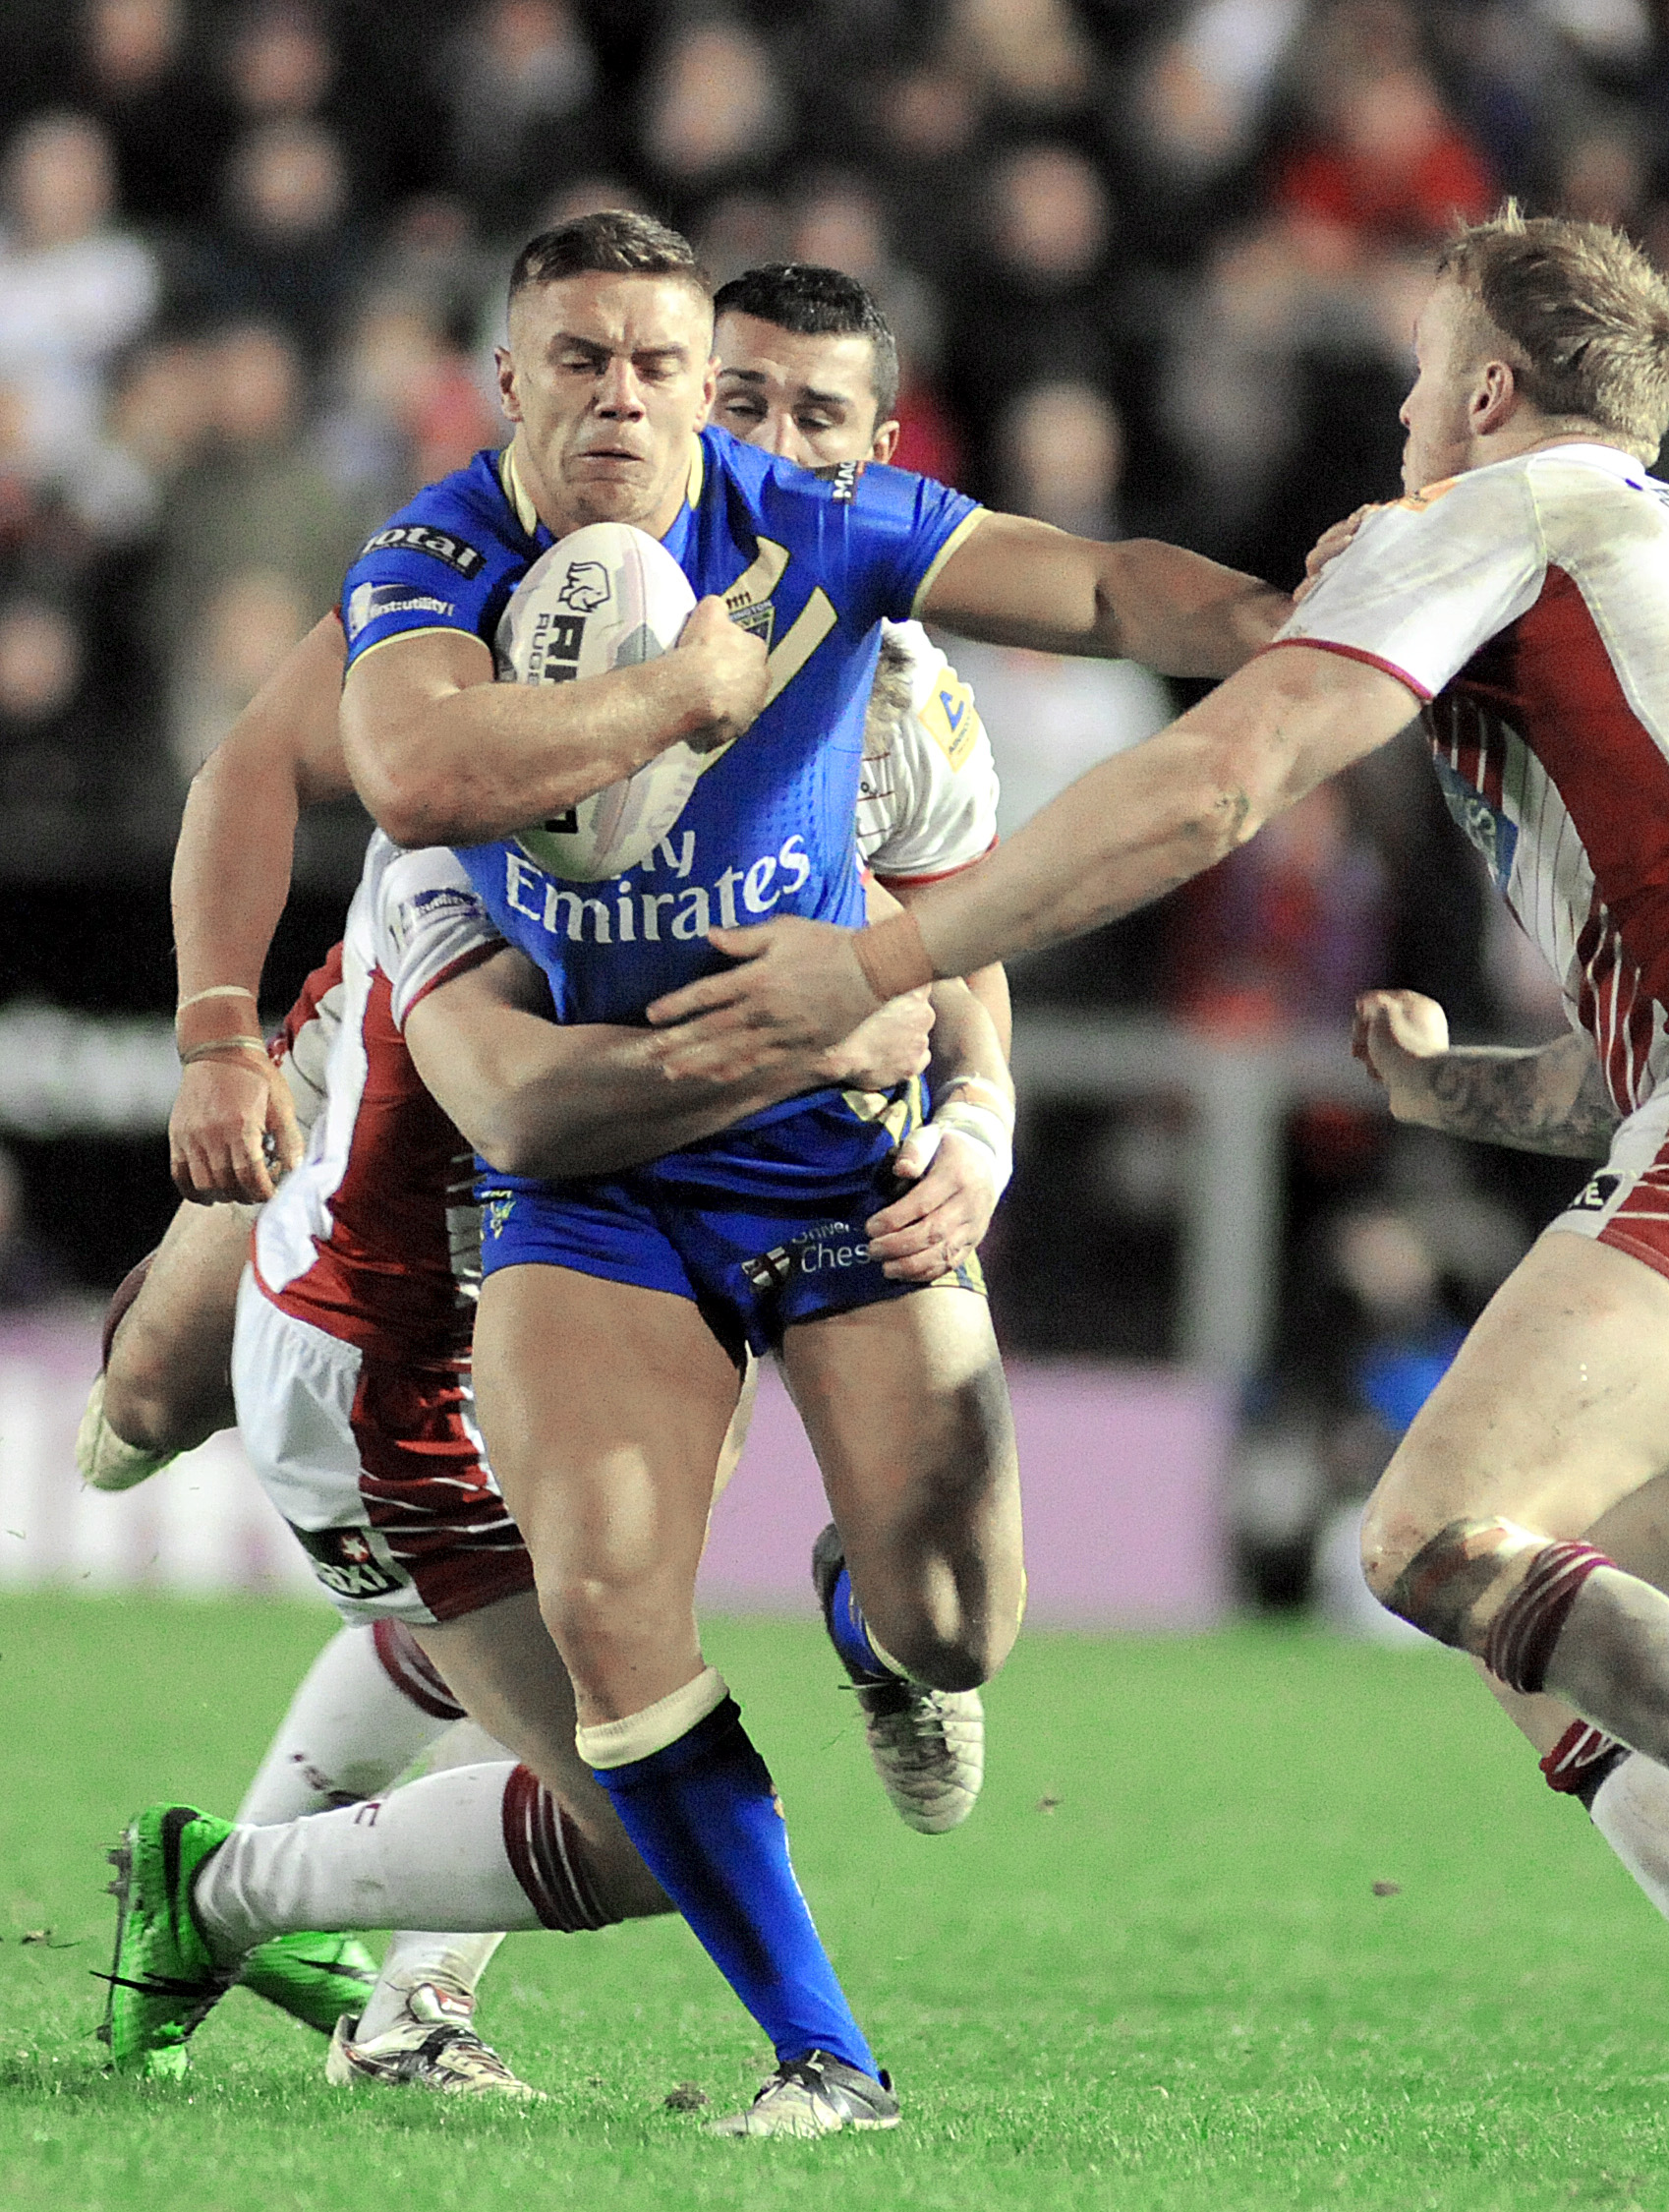 Matty Russell against Wigan. Picture by Mike Boden